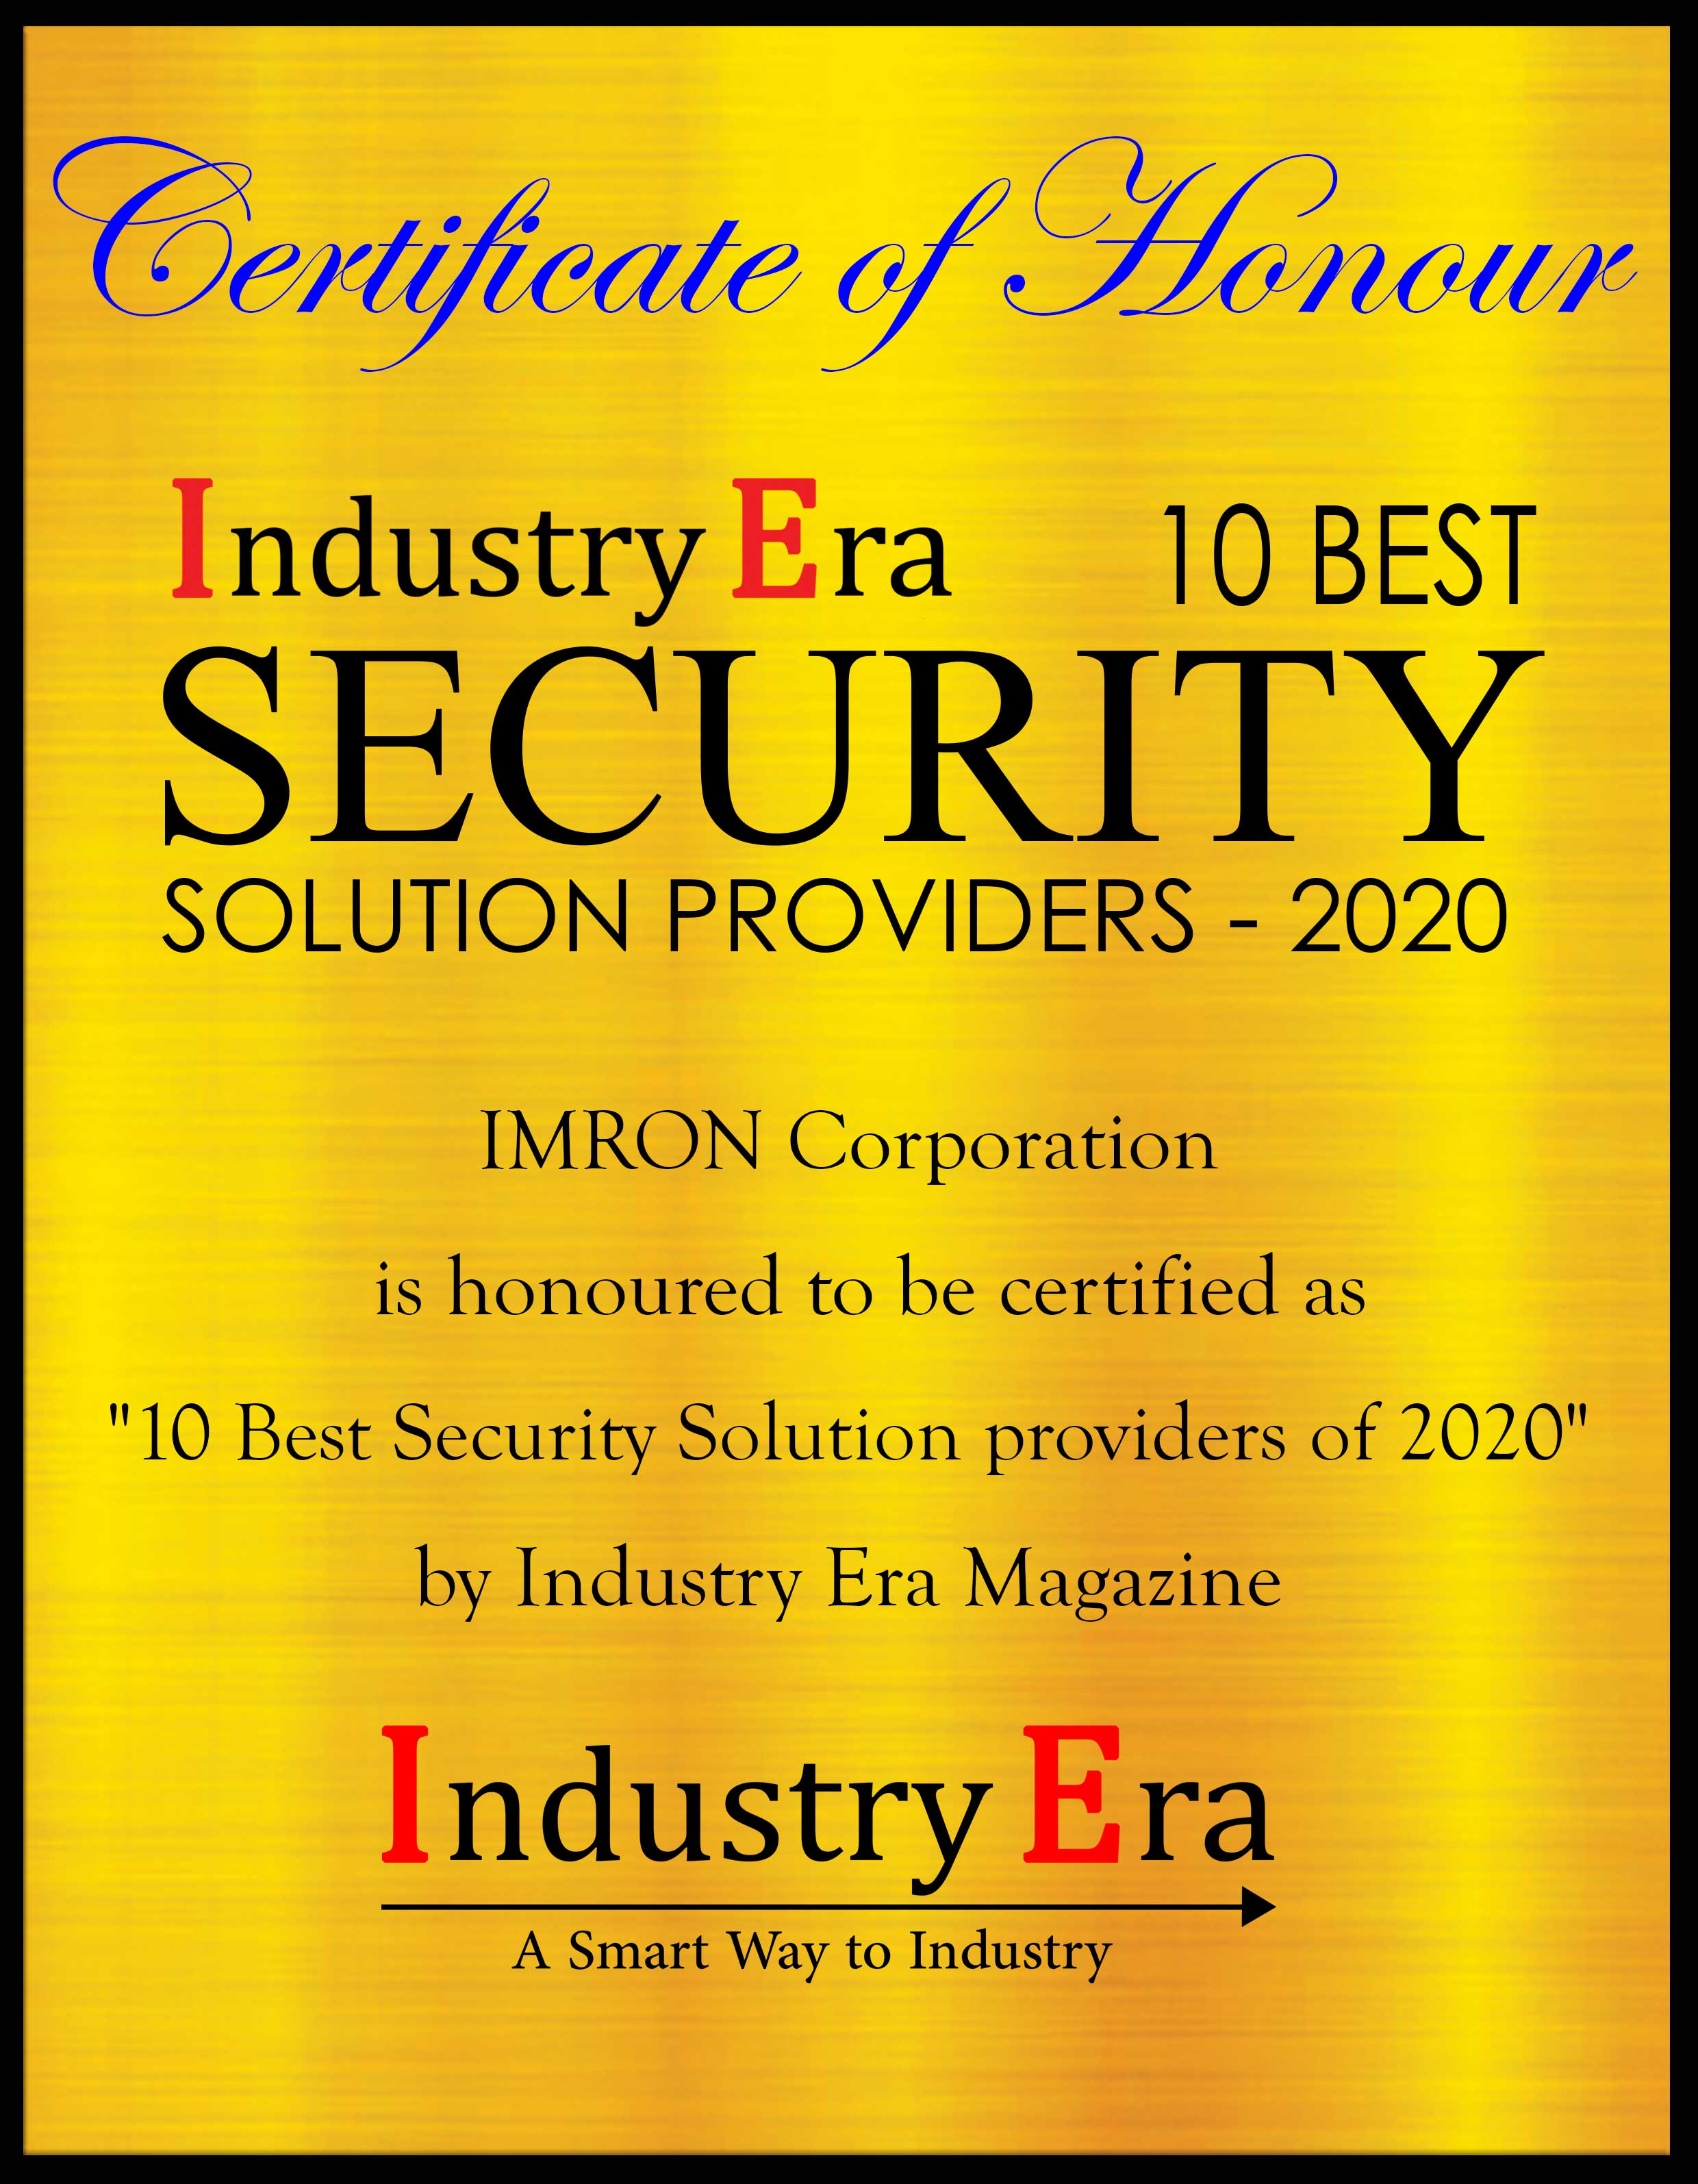 Imron Hussain President IMRON Corporation, 10 Best Security Solution Providers of 2020